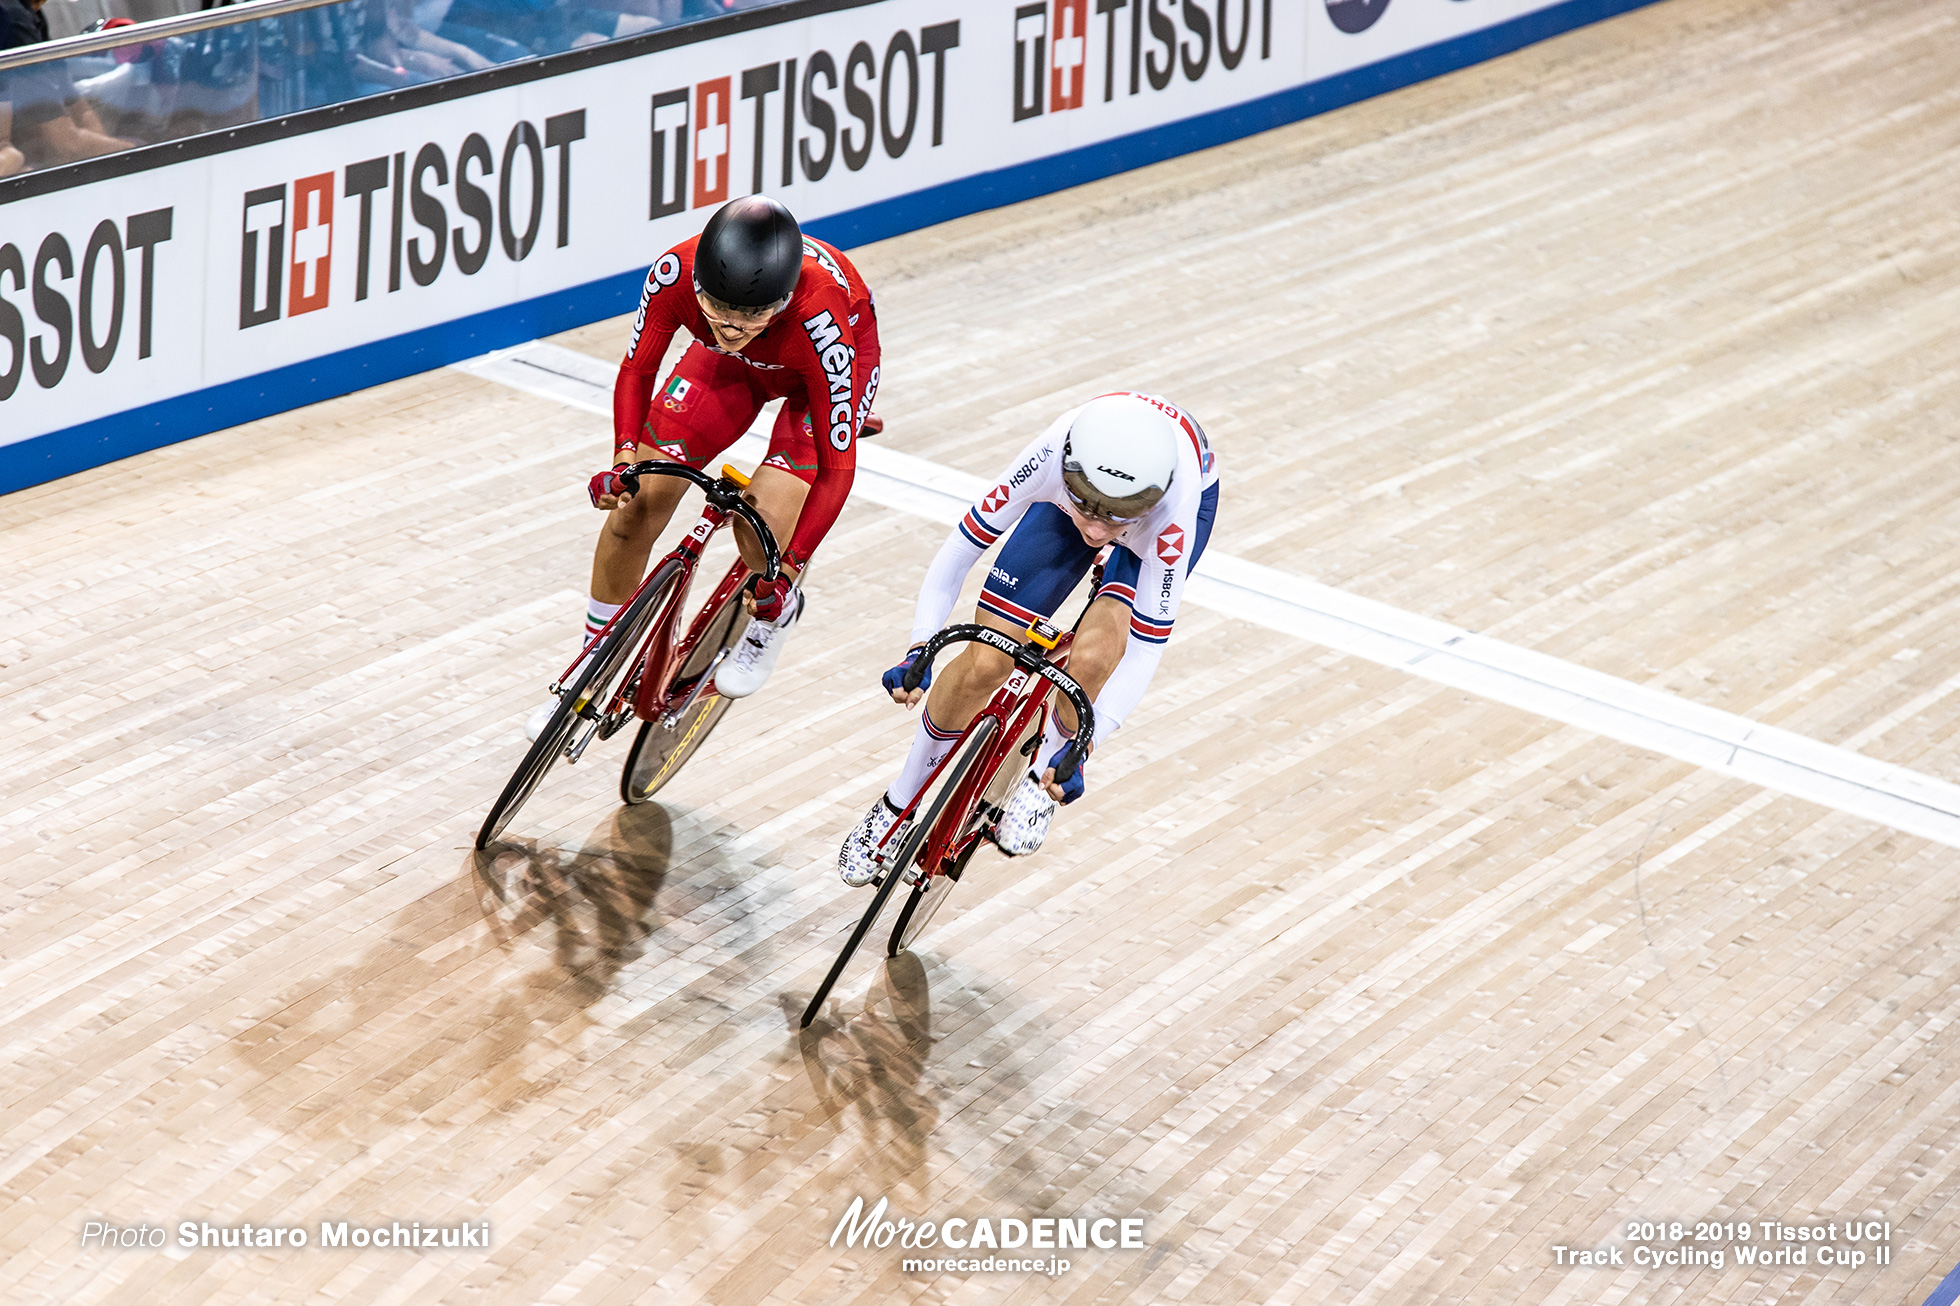 2018-2019 Tissot UCI Track Cycling World Cup II Women's Omnium I Elimination